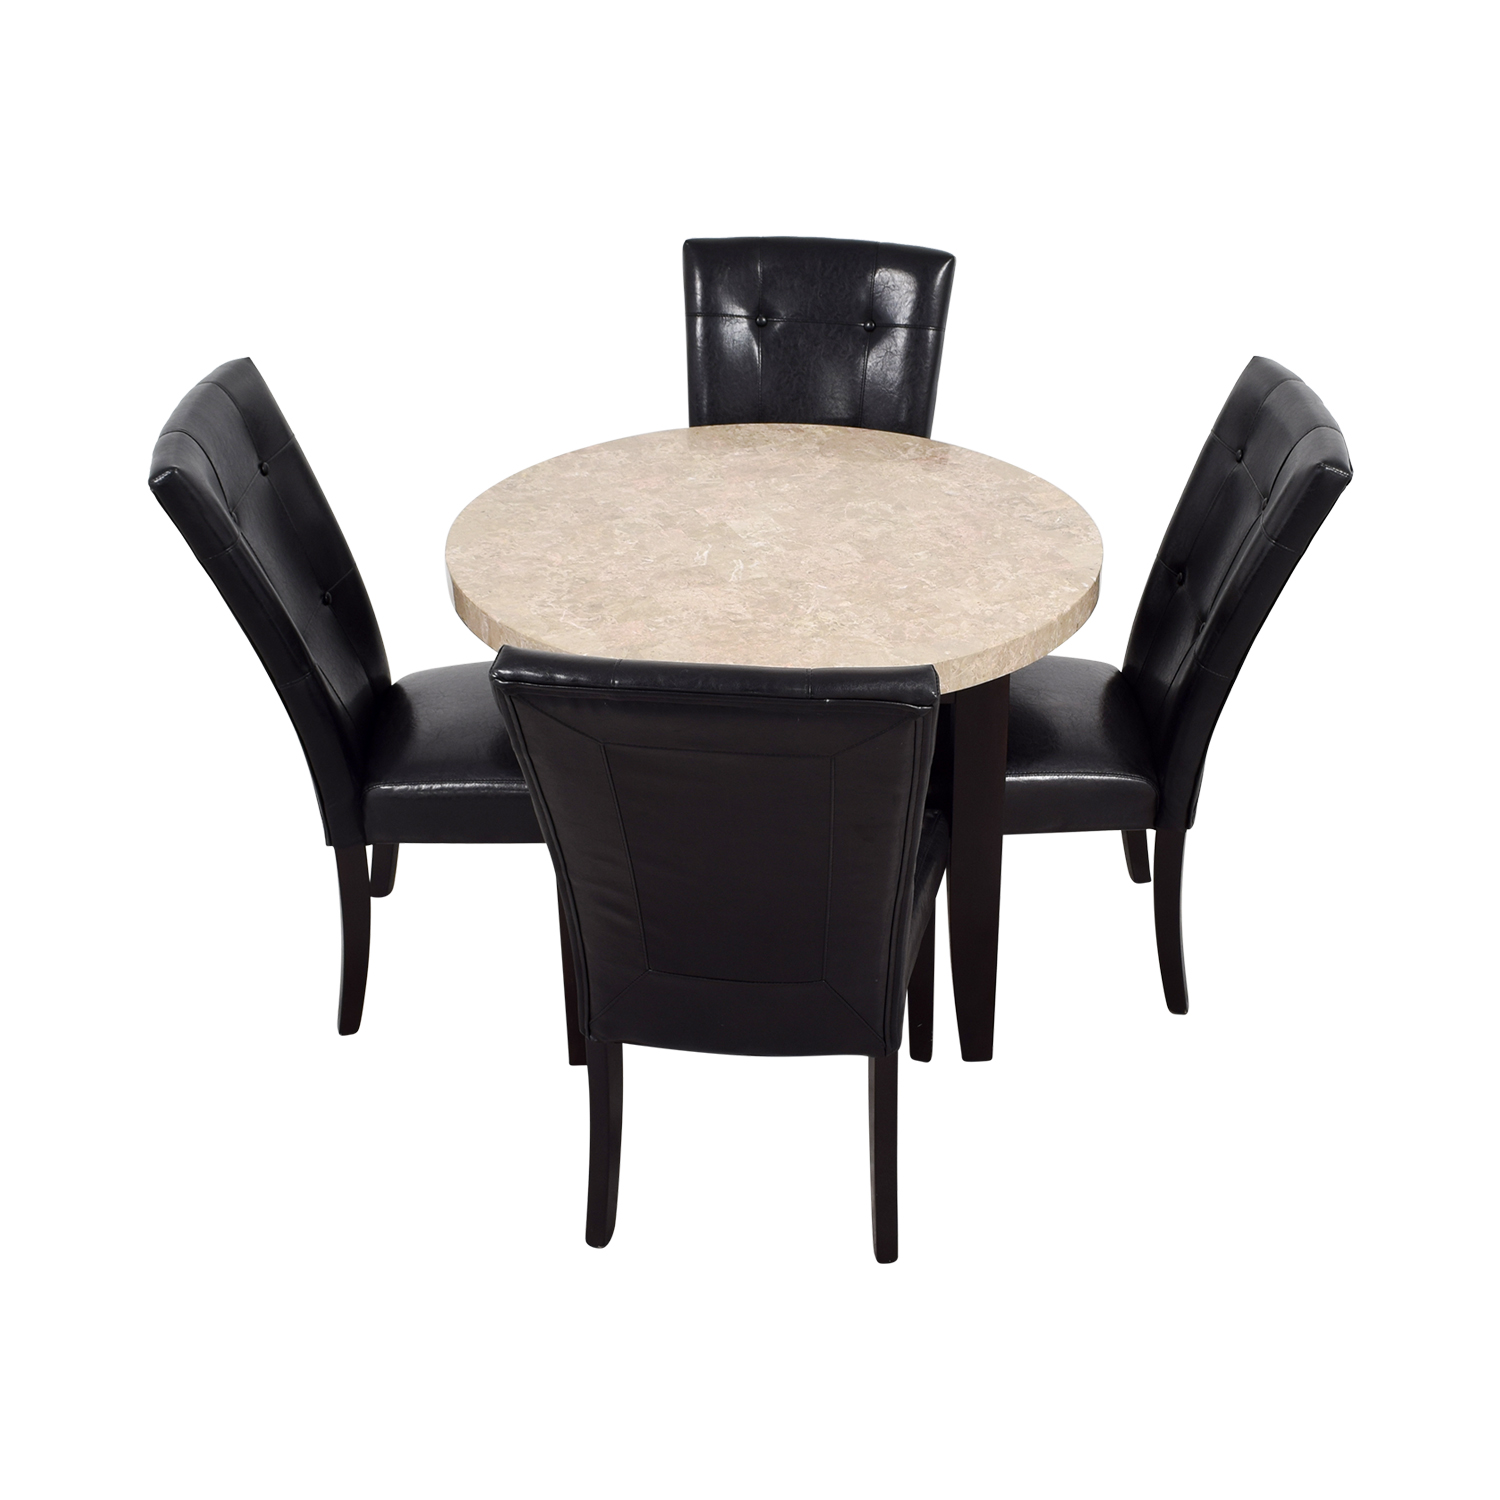 Bobs Furniture Bobs Furniture Black and Tan Marble Dining Set nj